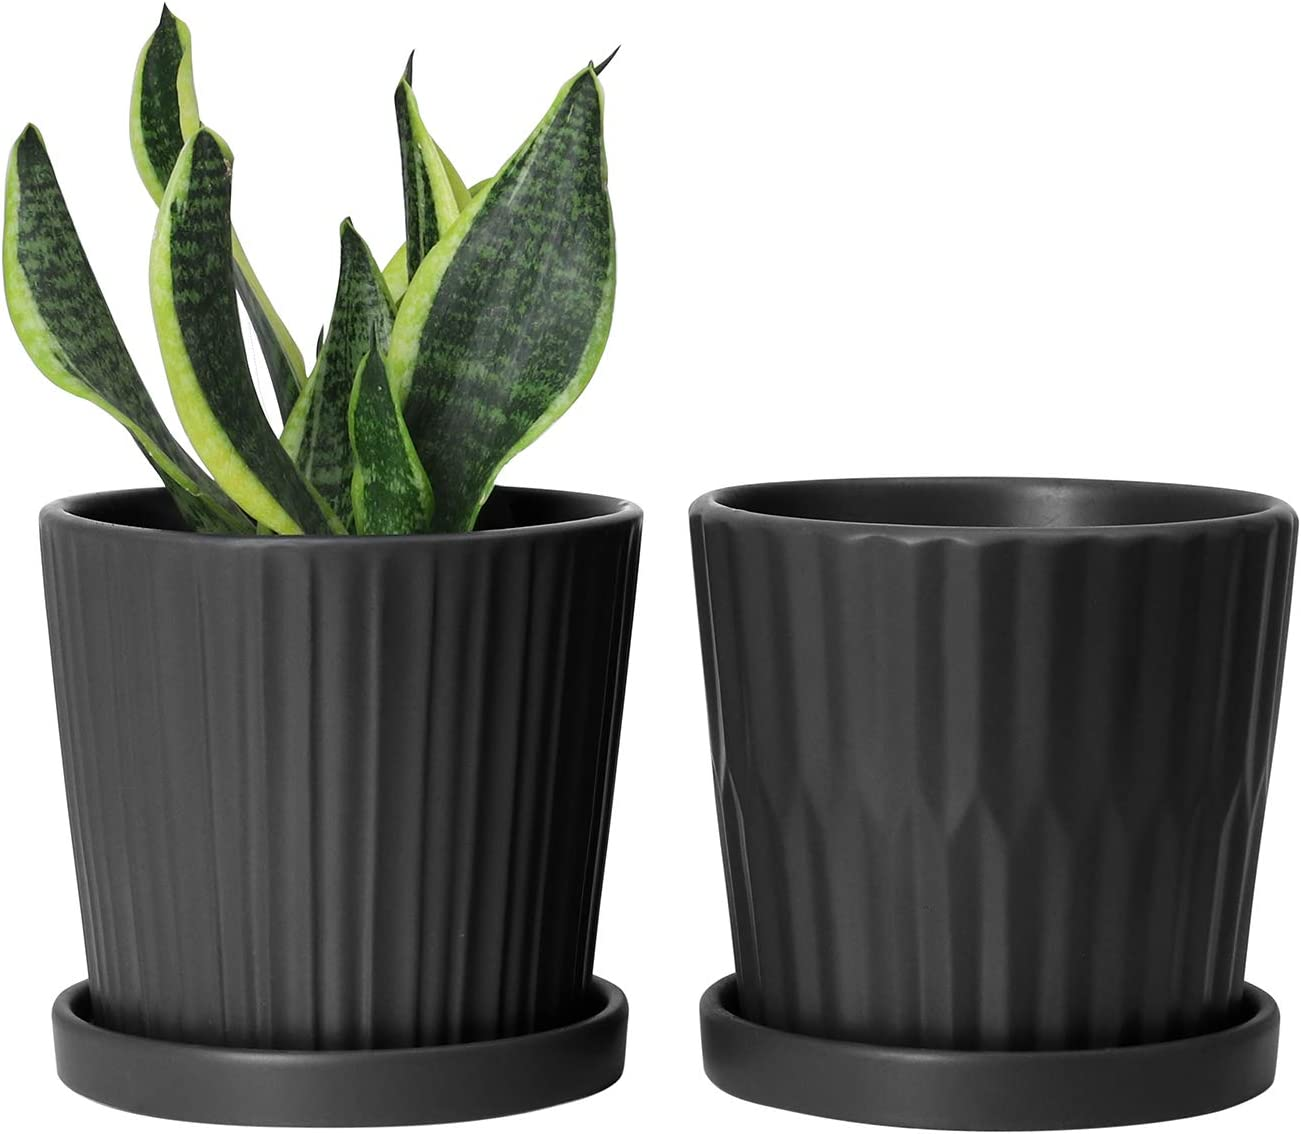 Medium Plant Pots - 6 Inch Black Cylinder Ceramic Planters with Attached Saucers, Two Line Grain, House and Office Decor, Set of 2